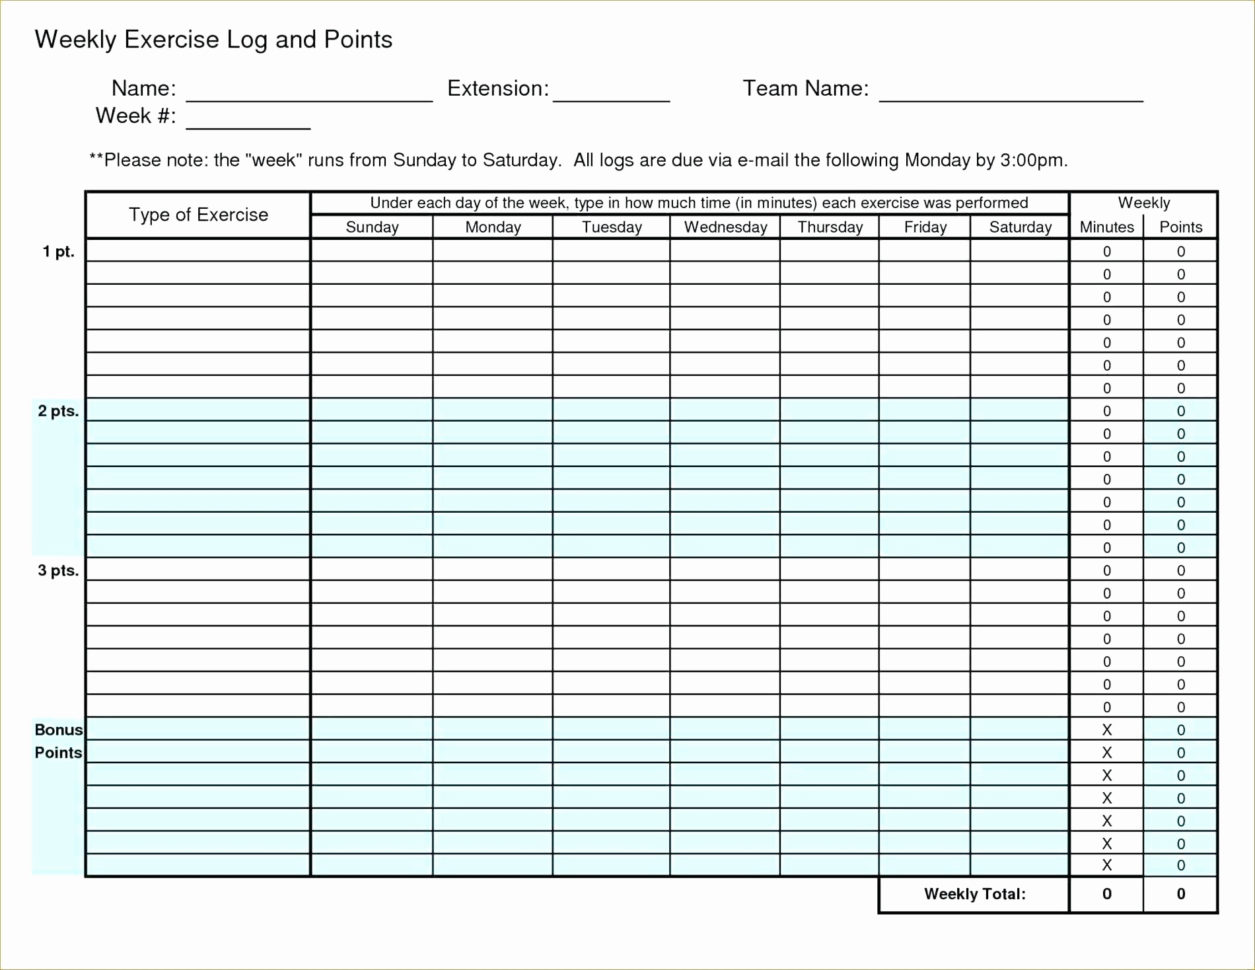 Westside Barbell Program Spreadsheet Intended For Juggernautpreadsheet Beautiful Famousheiko Template Inspiration